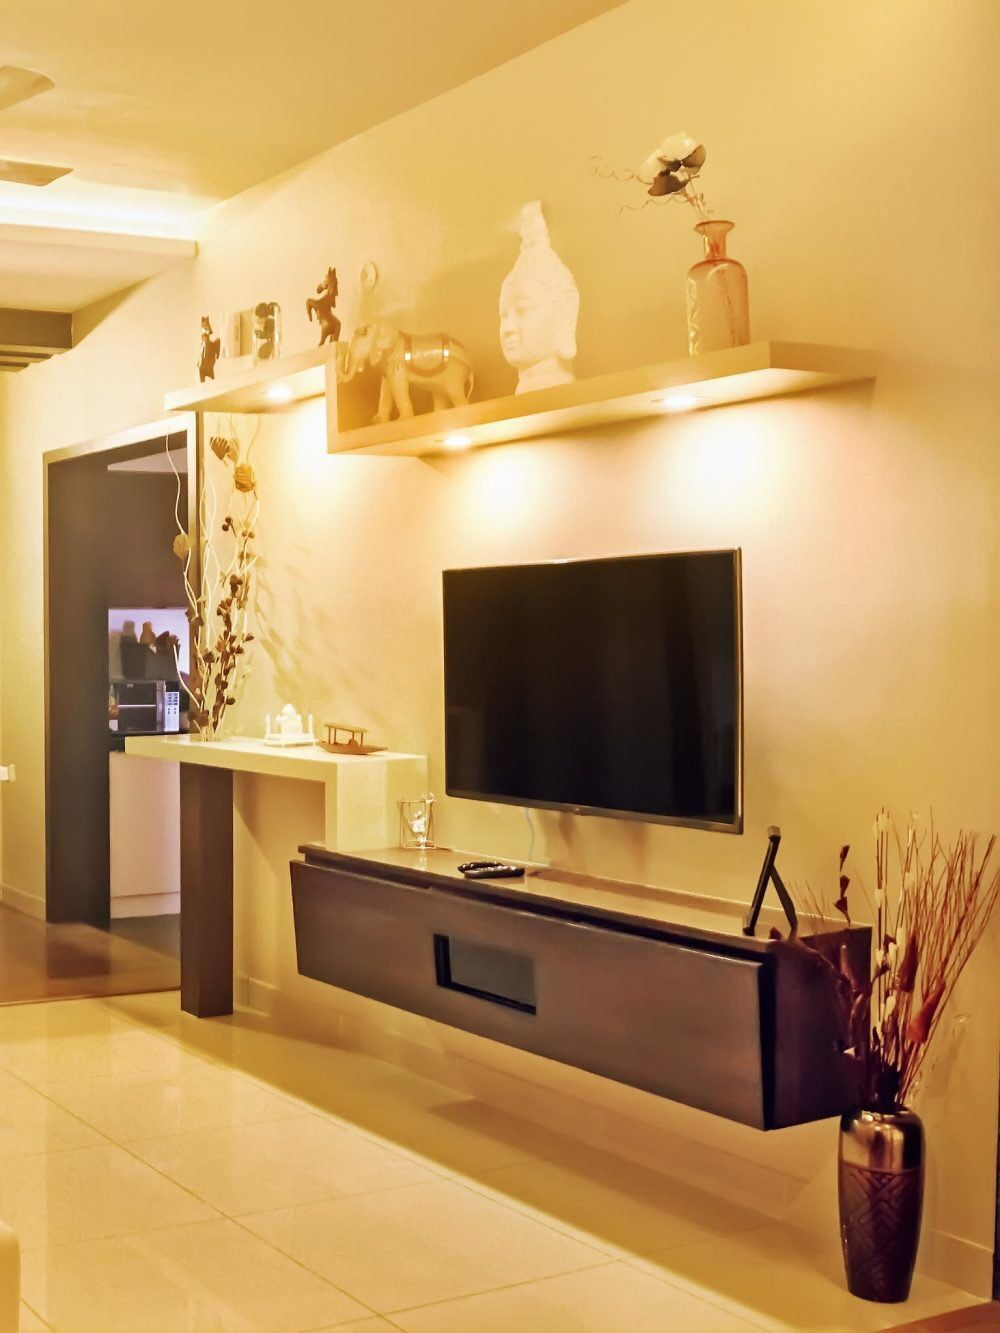 Pin by Manu on tv disigns | Pinterest | TV unit, TVs and Tv walls